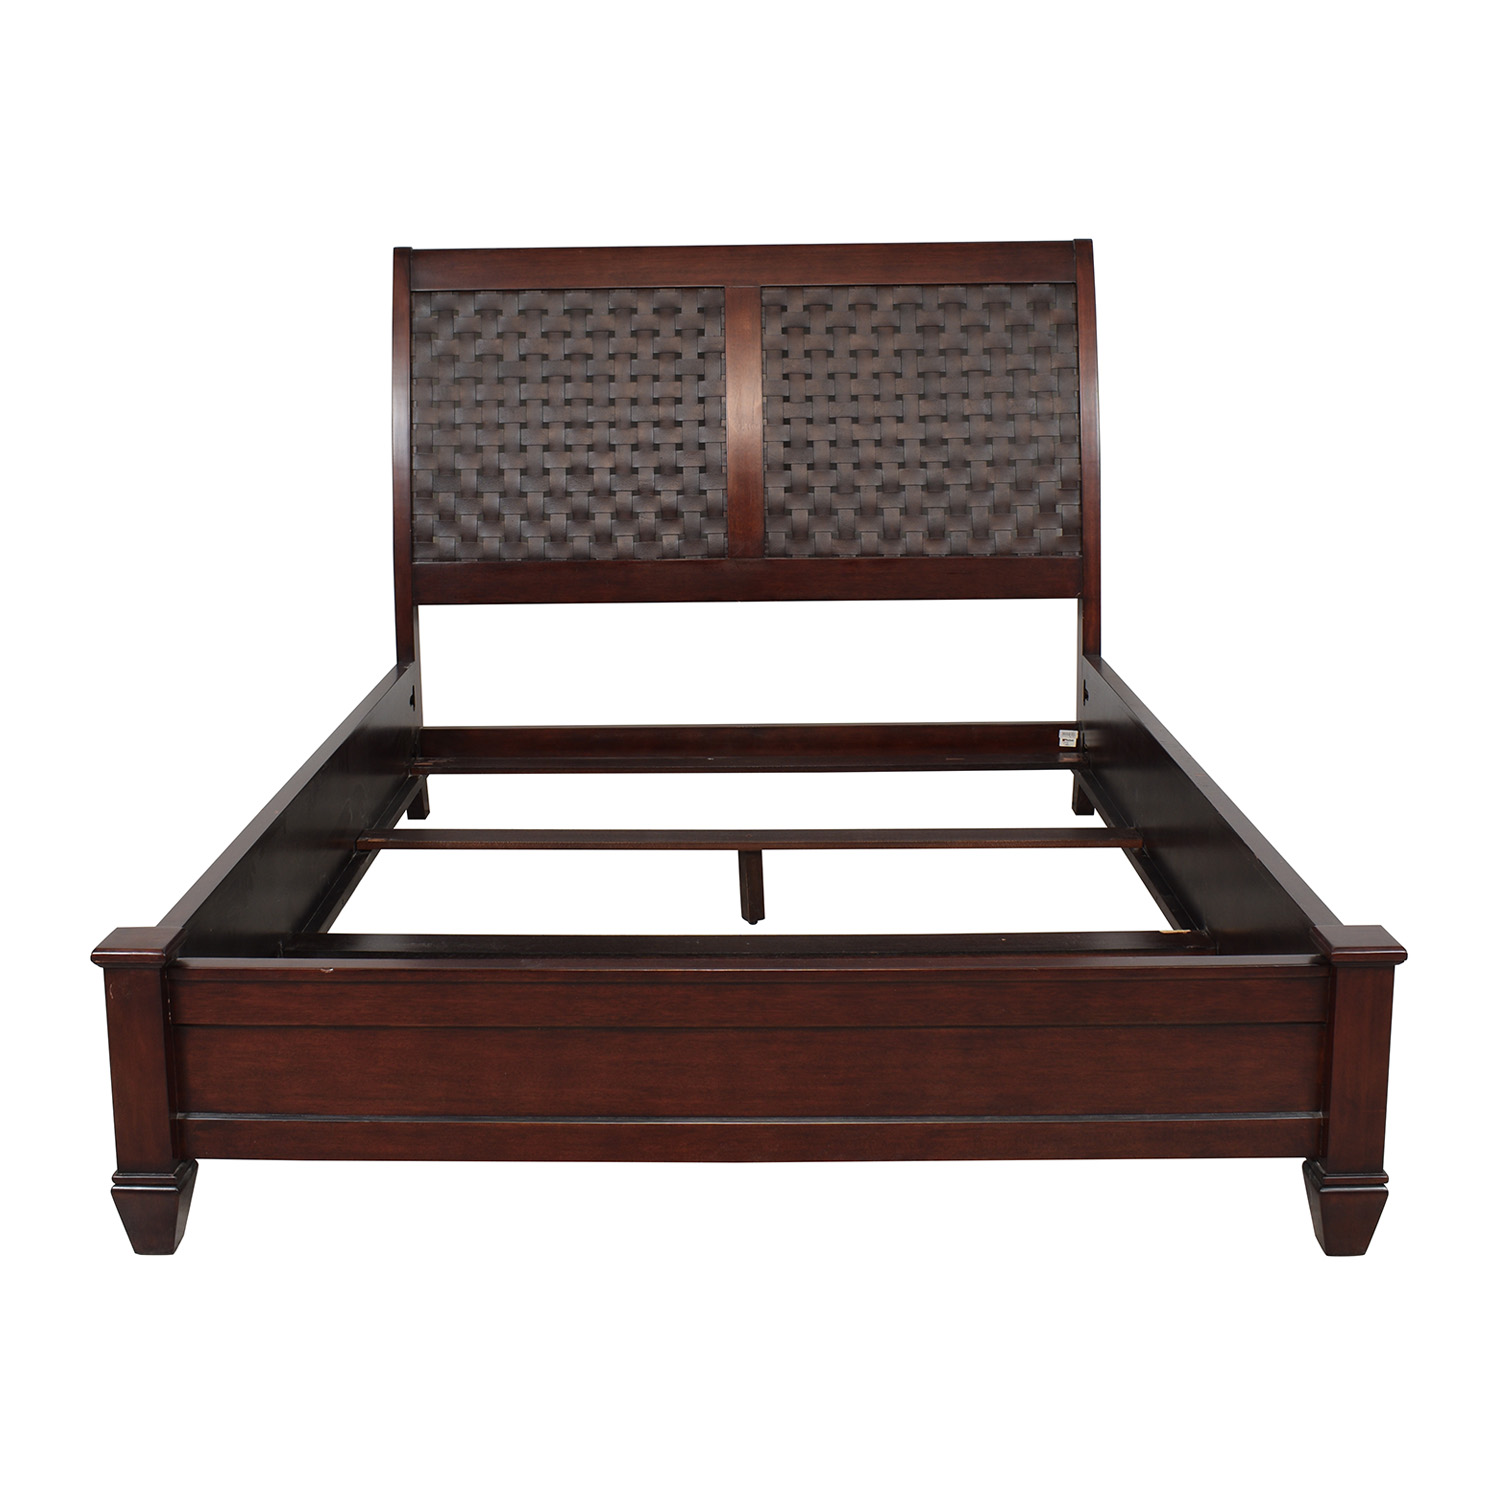 buy Lane Furniture Lane Furniture Woven Queen Bed online